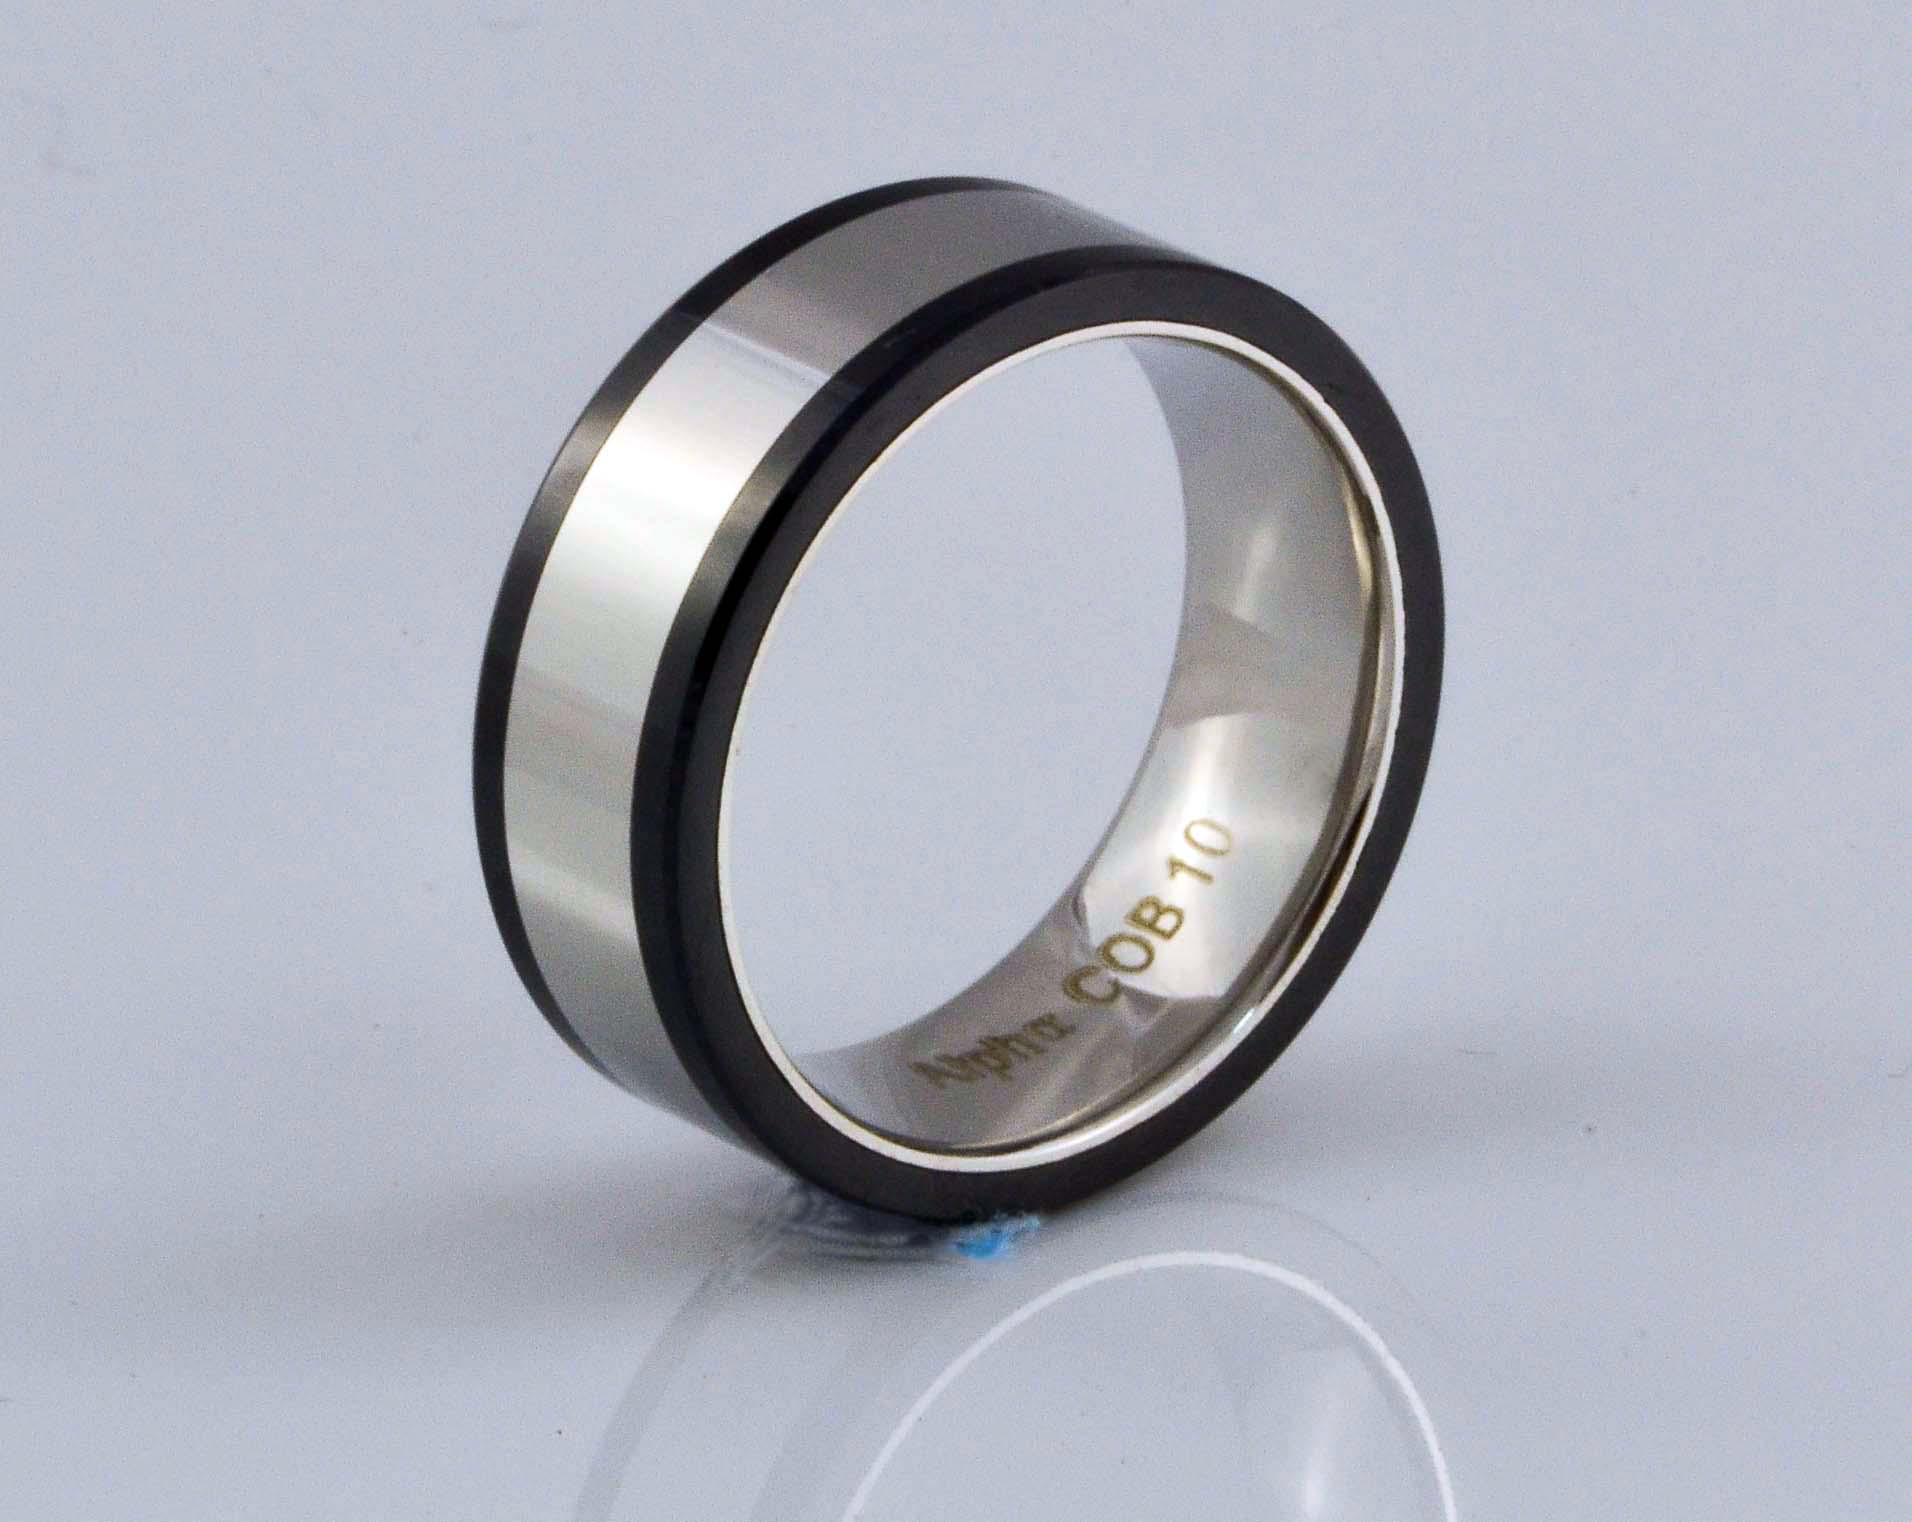 satin rings ring polished edge shiny with wedding stepped products cobalt brushed and center black